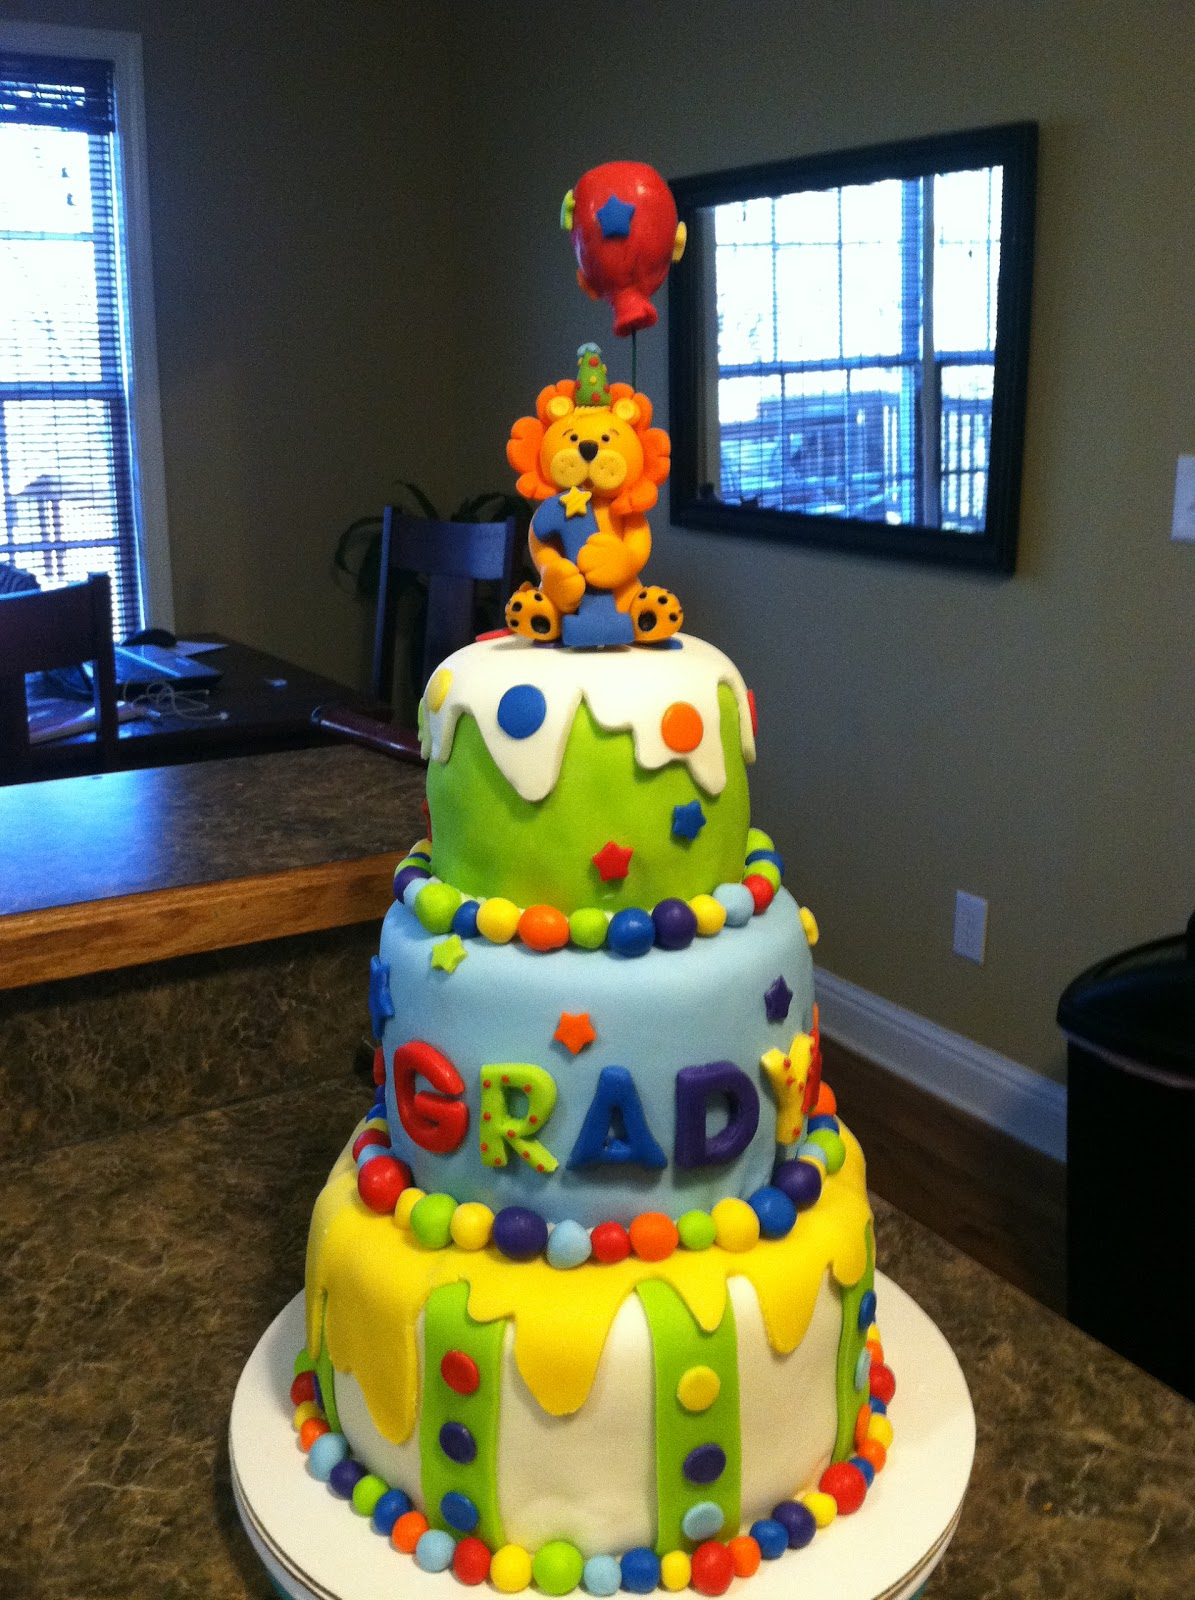 Bday Cake Images For Baby Boy : Brandi Cakes: Baby Boy First Birthday Circus Cake